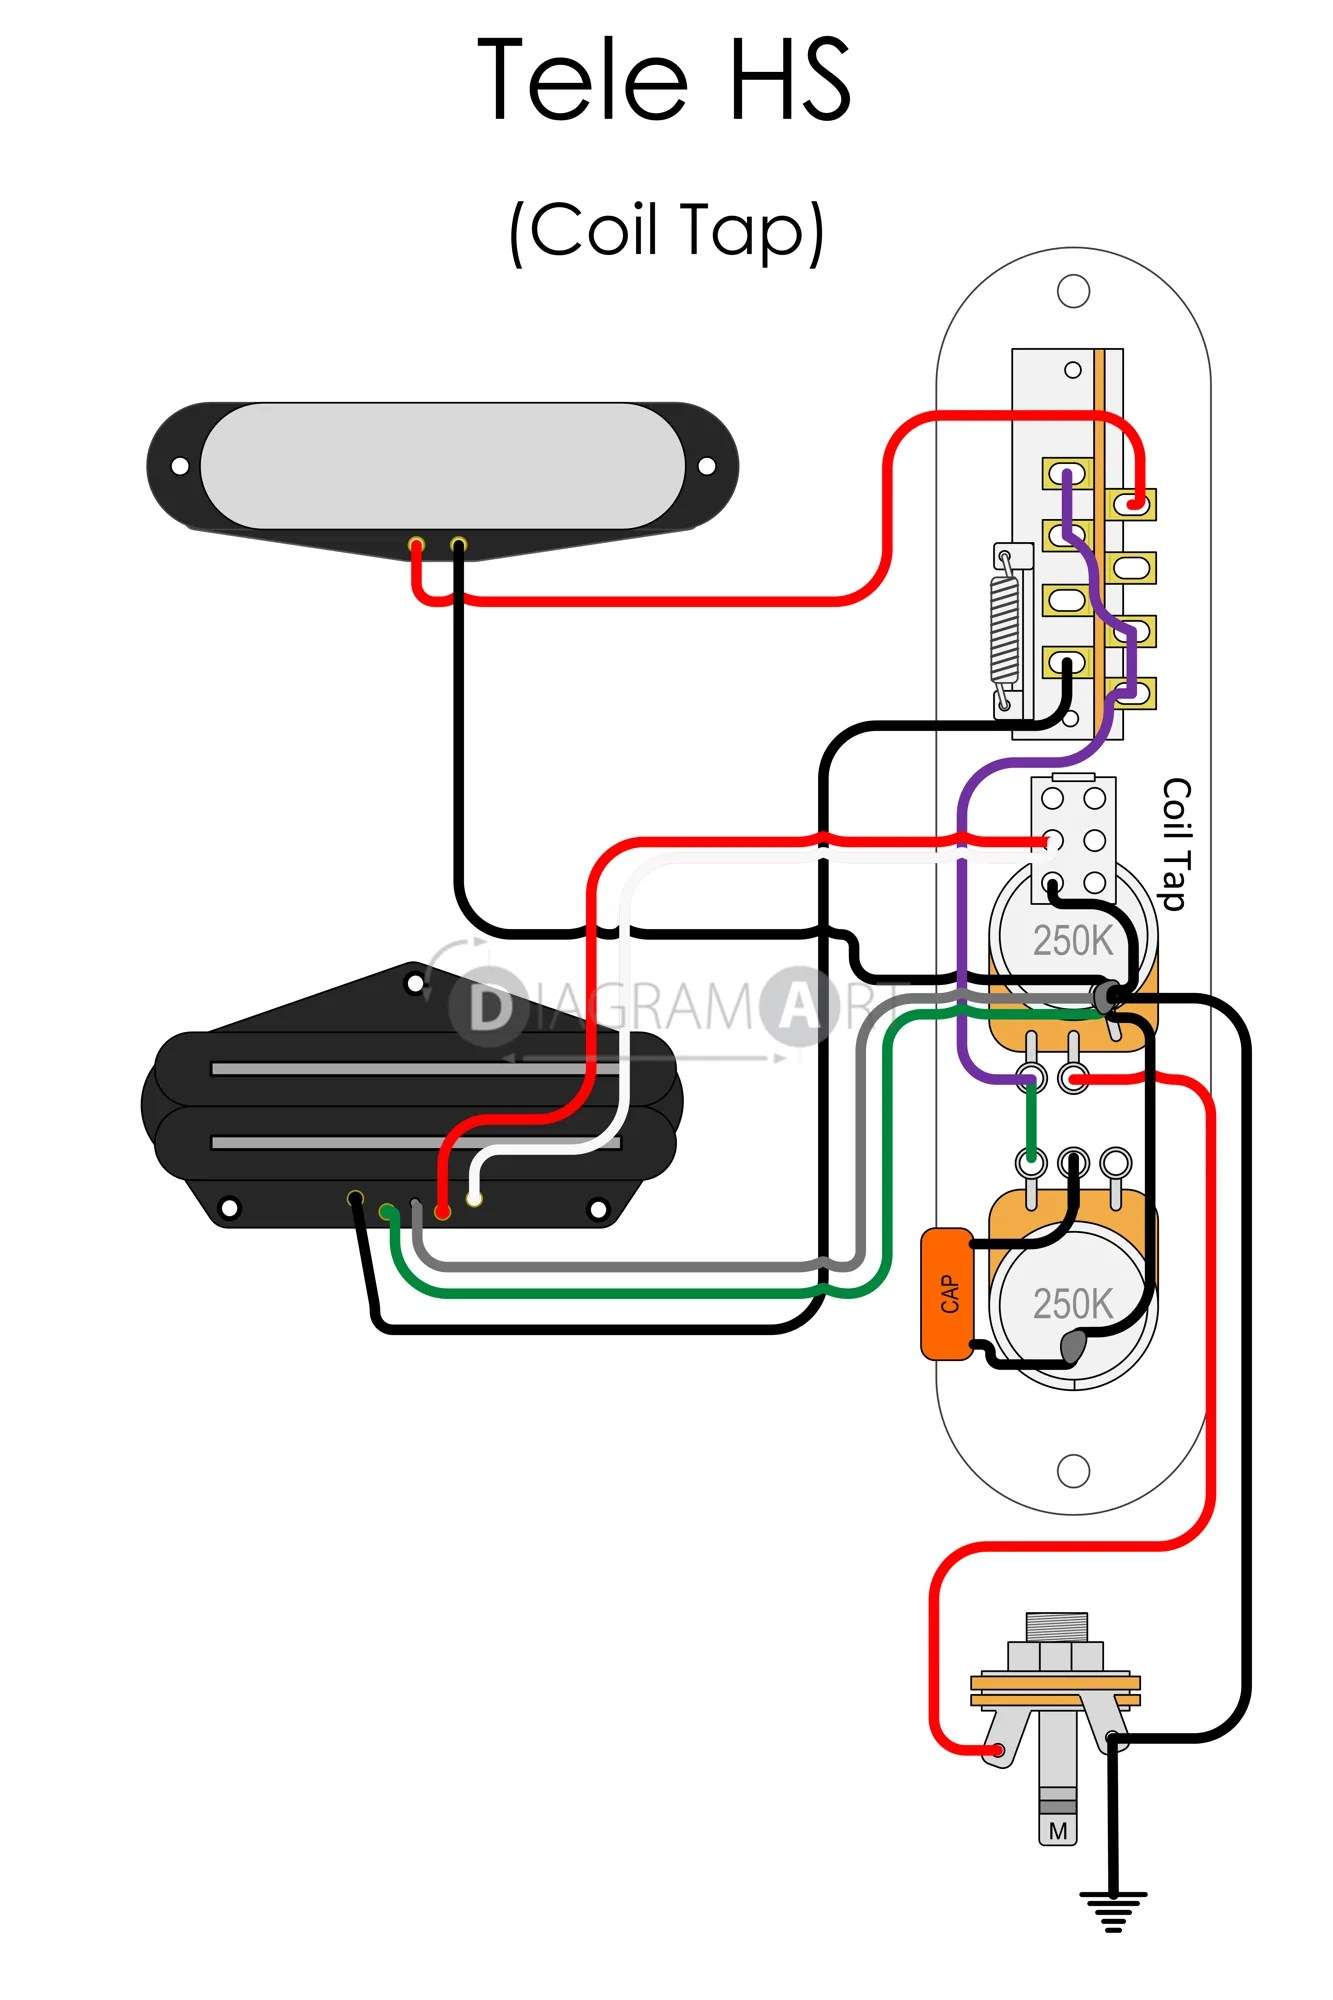 medium resolution of electric guitar wiring tele hs coil tap electric circuit dimarzio coil tap wiring diagram coil tap diagram